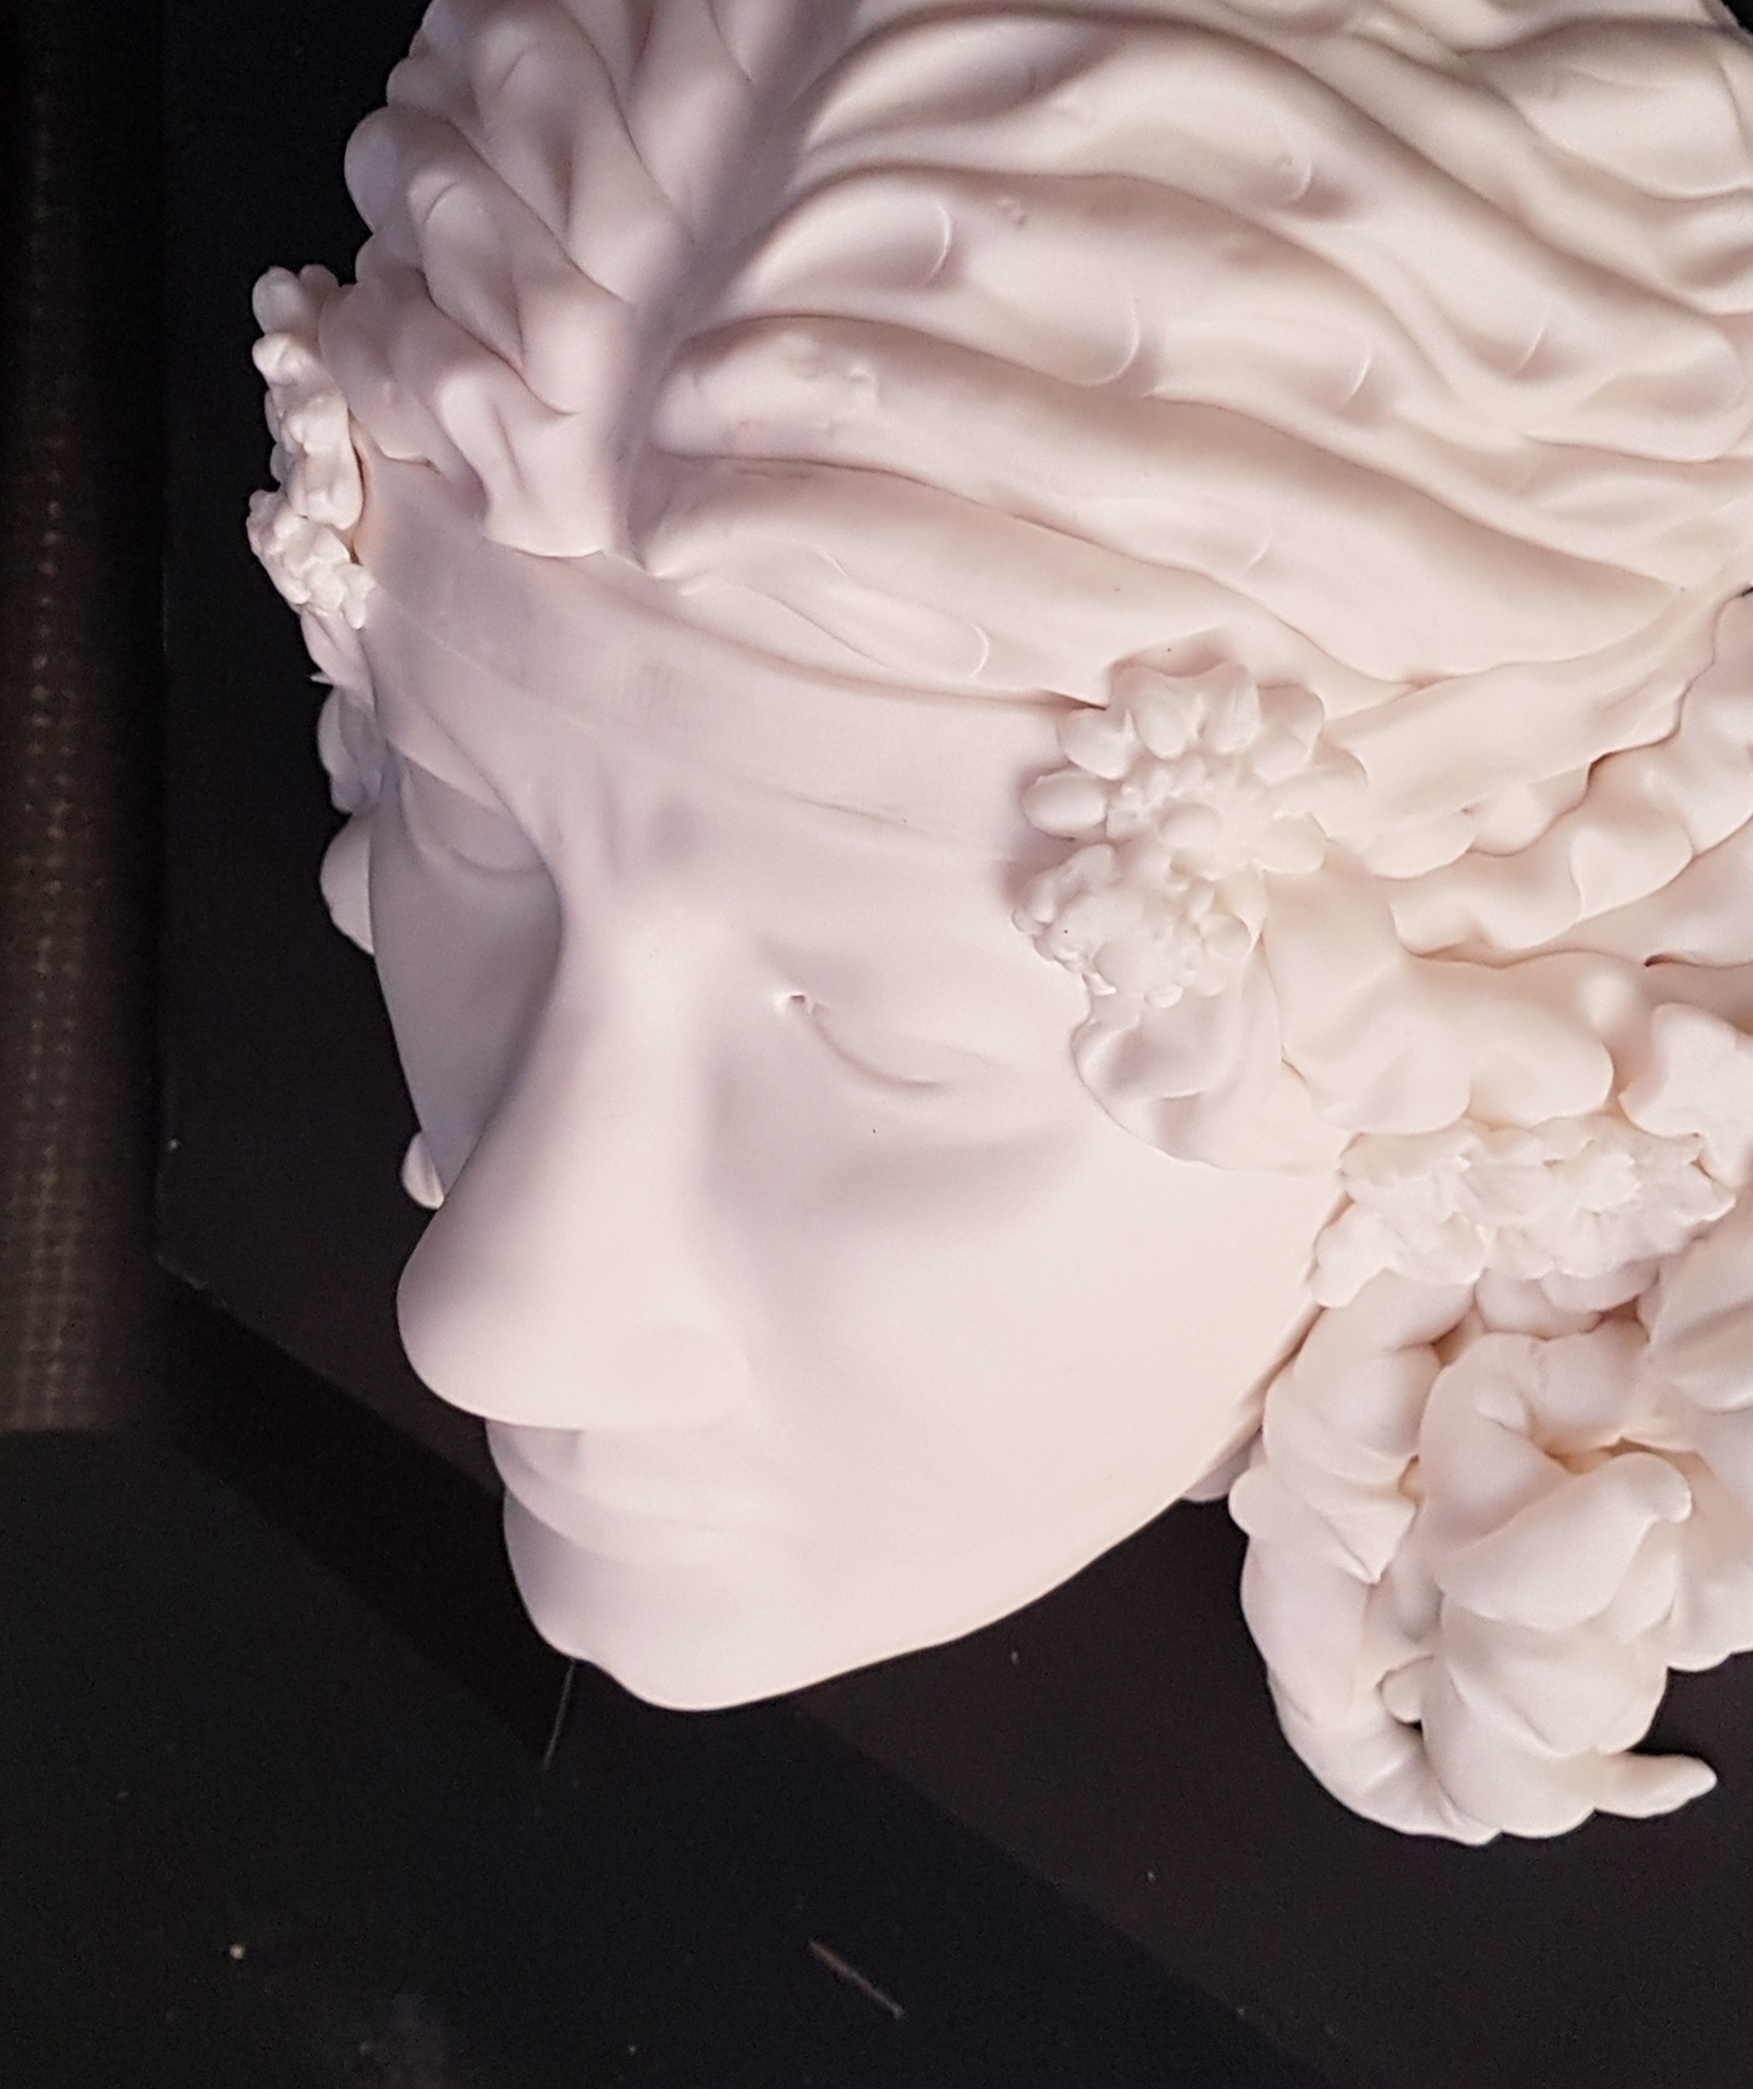 white Modeling Chocolate sculpture